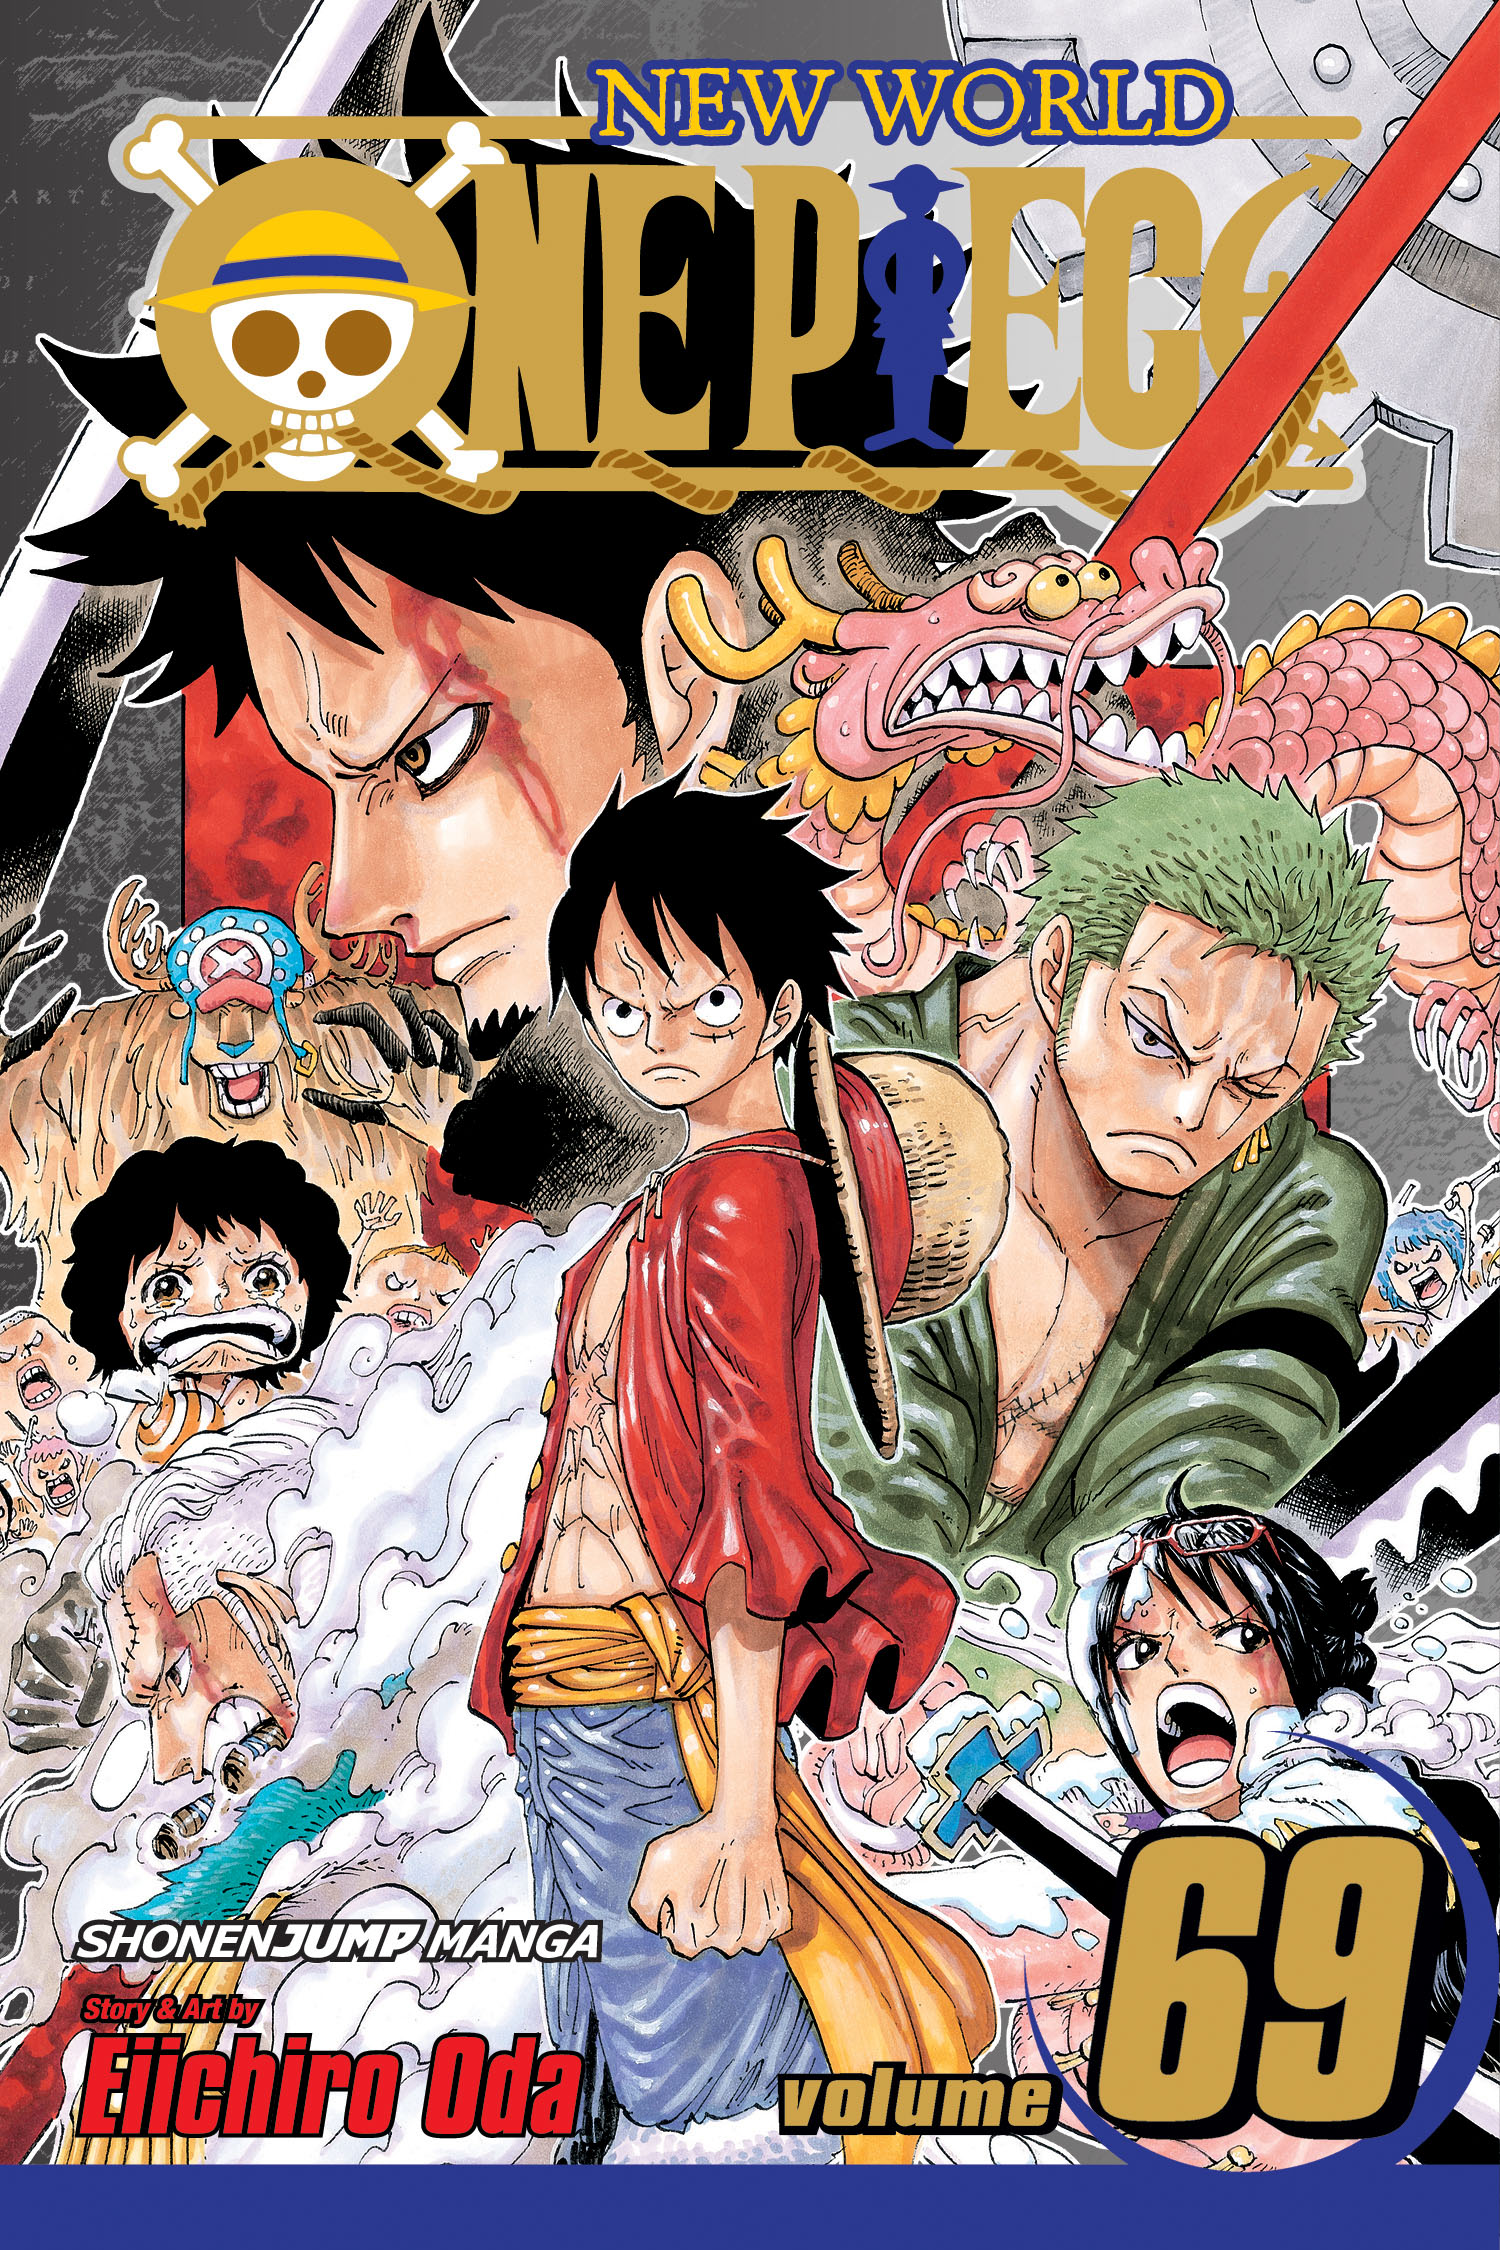 One-piece-vol-69-9781421561431_hr